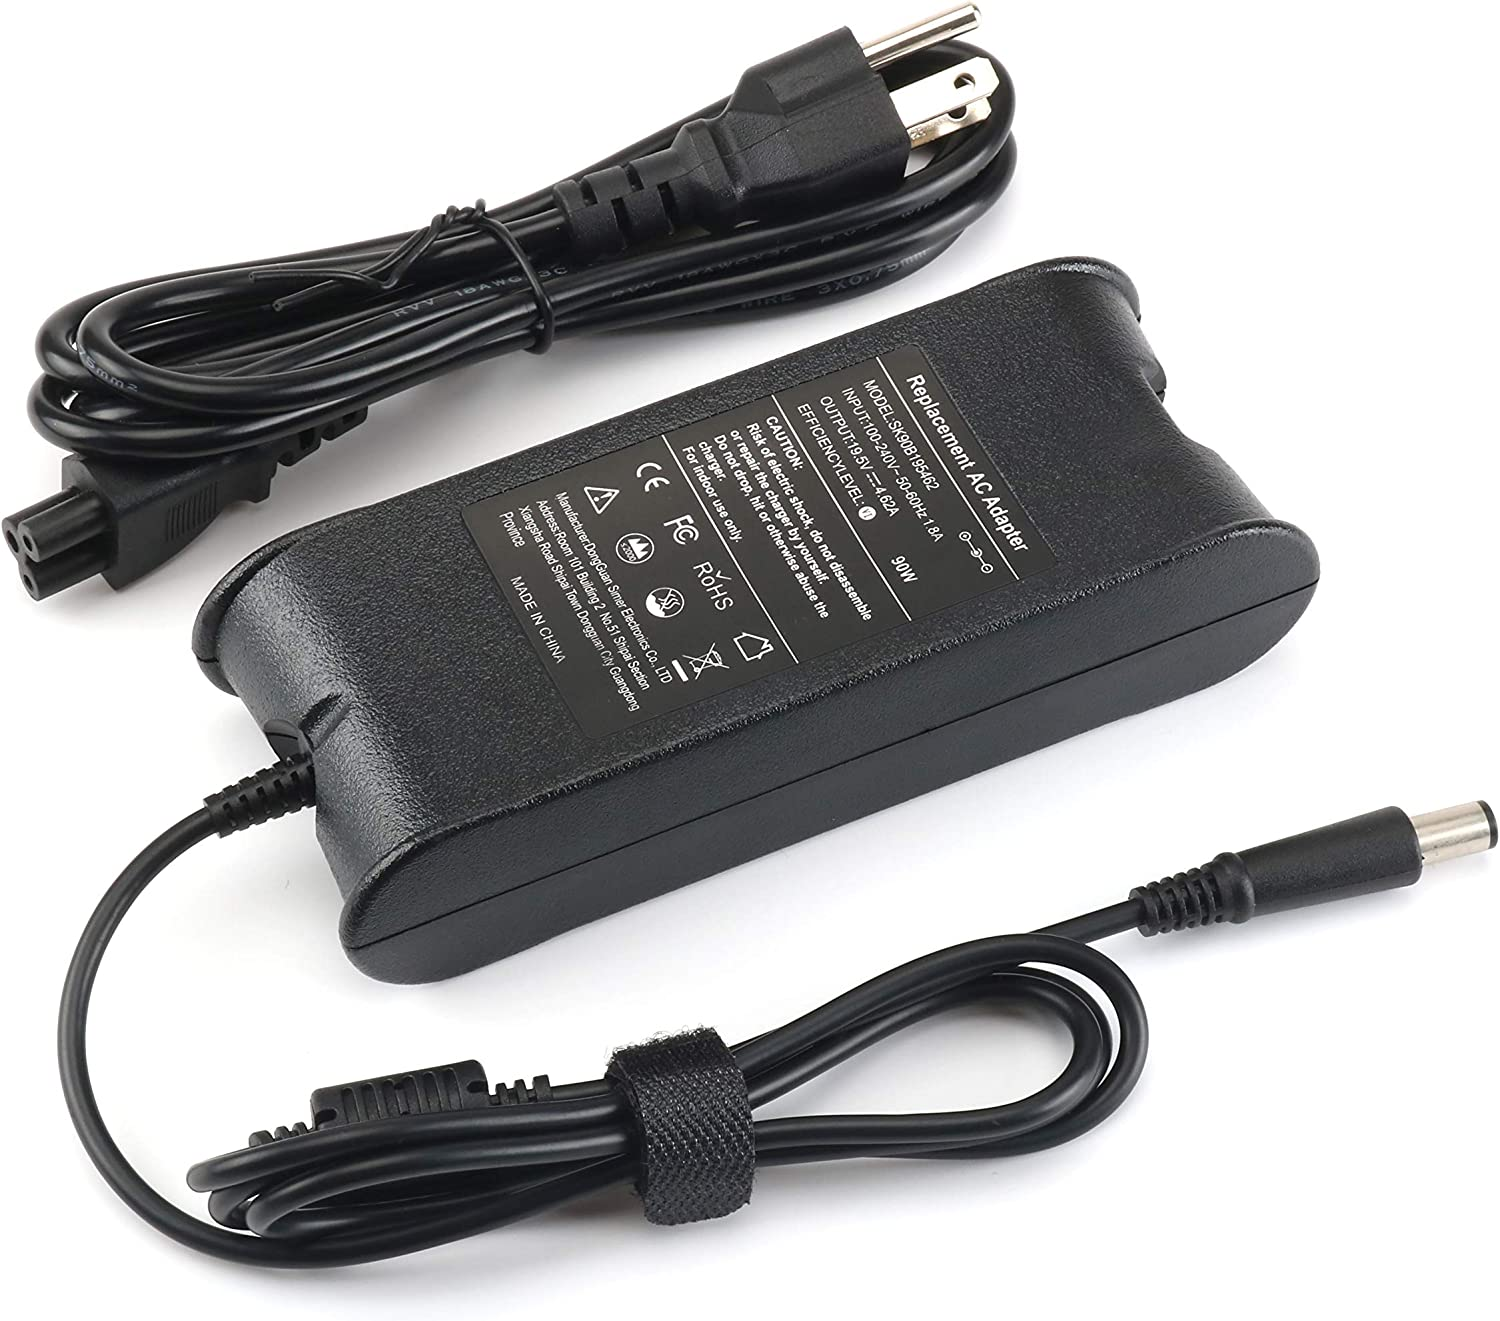 90W Laptops Ac Adapter Charger for Dell Inspiron N7110 7490 N5110 3451 N7010 5537 9300 5720 N5010 5580 N5050 5721 3521 3520 3542 5521 5547 1764 5520 Vostro 3400 3500 5480 XPS L502X M1530 Studio 1440